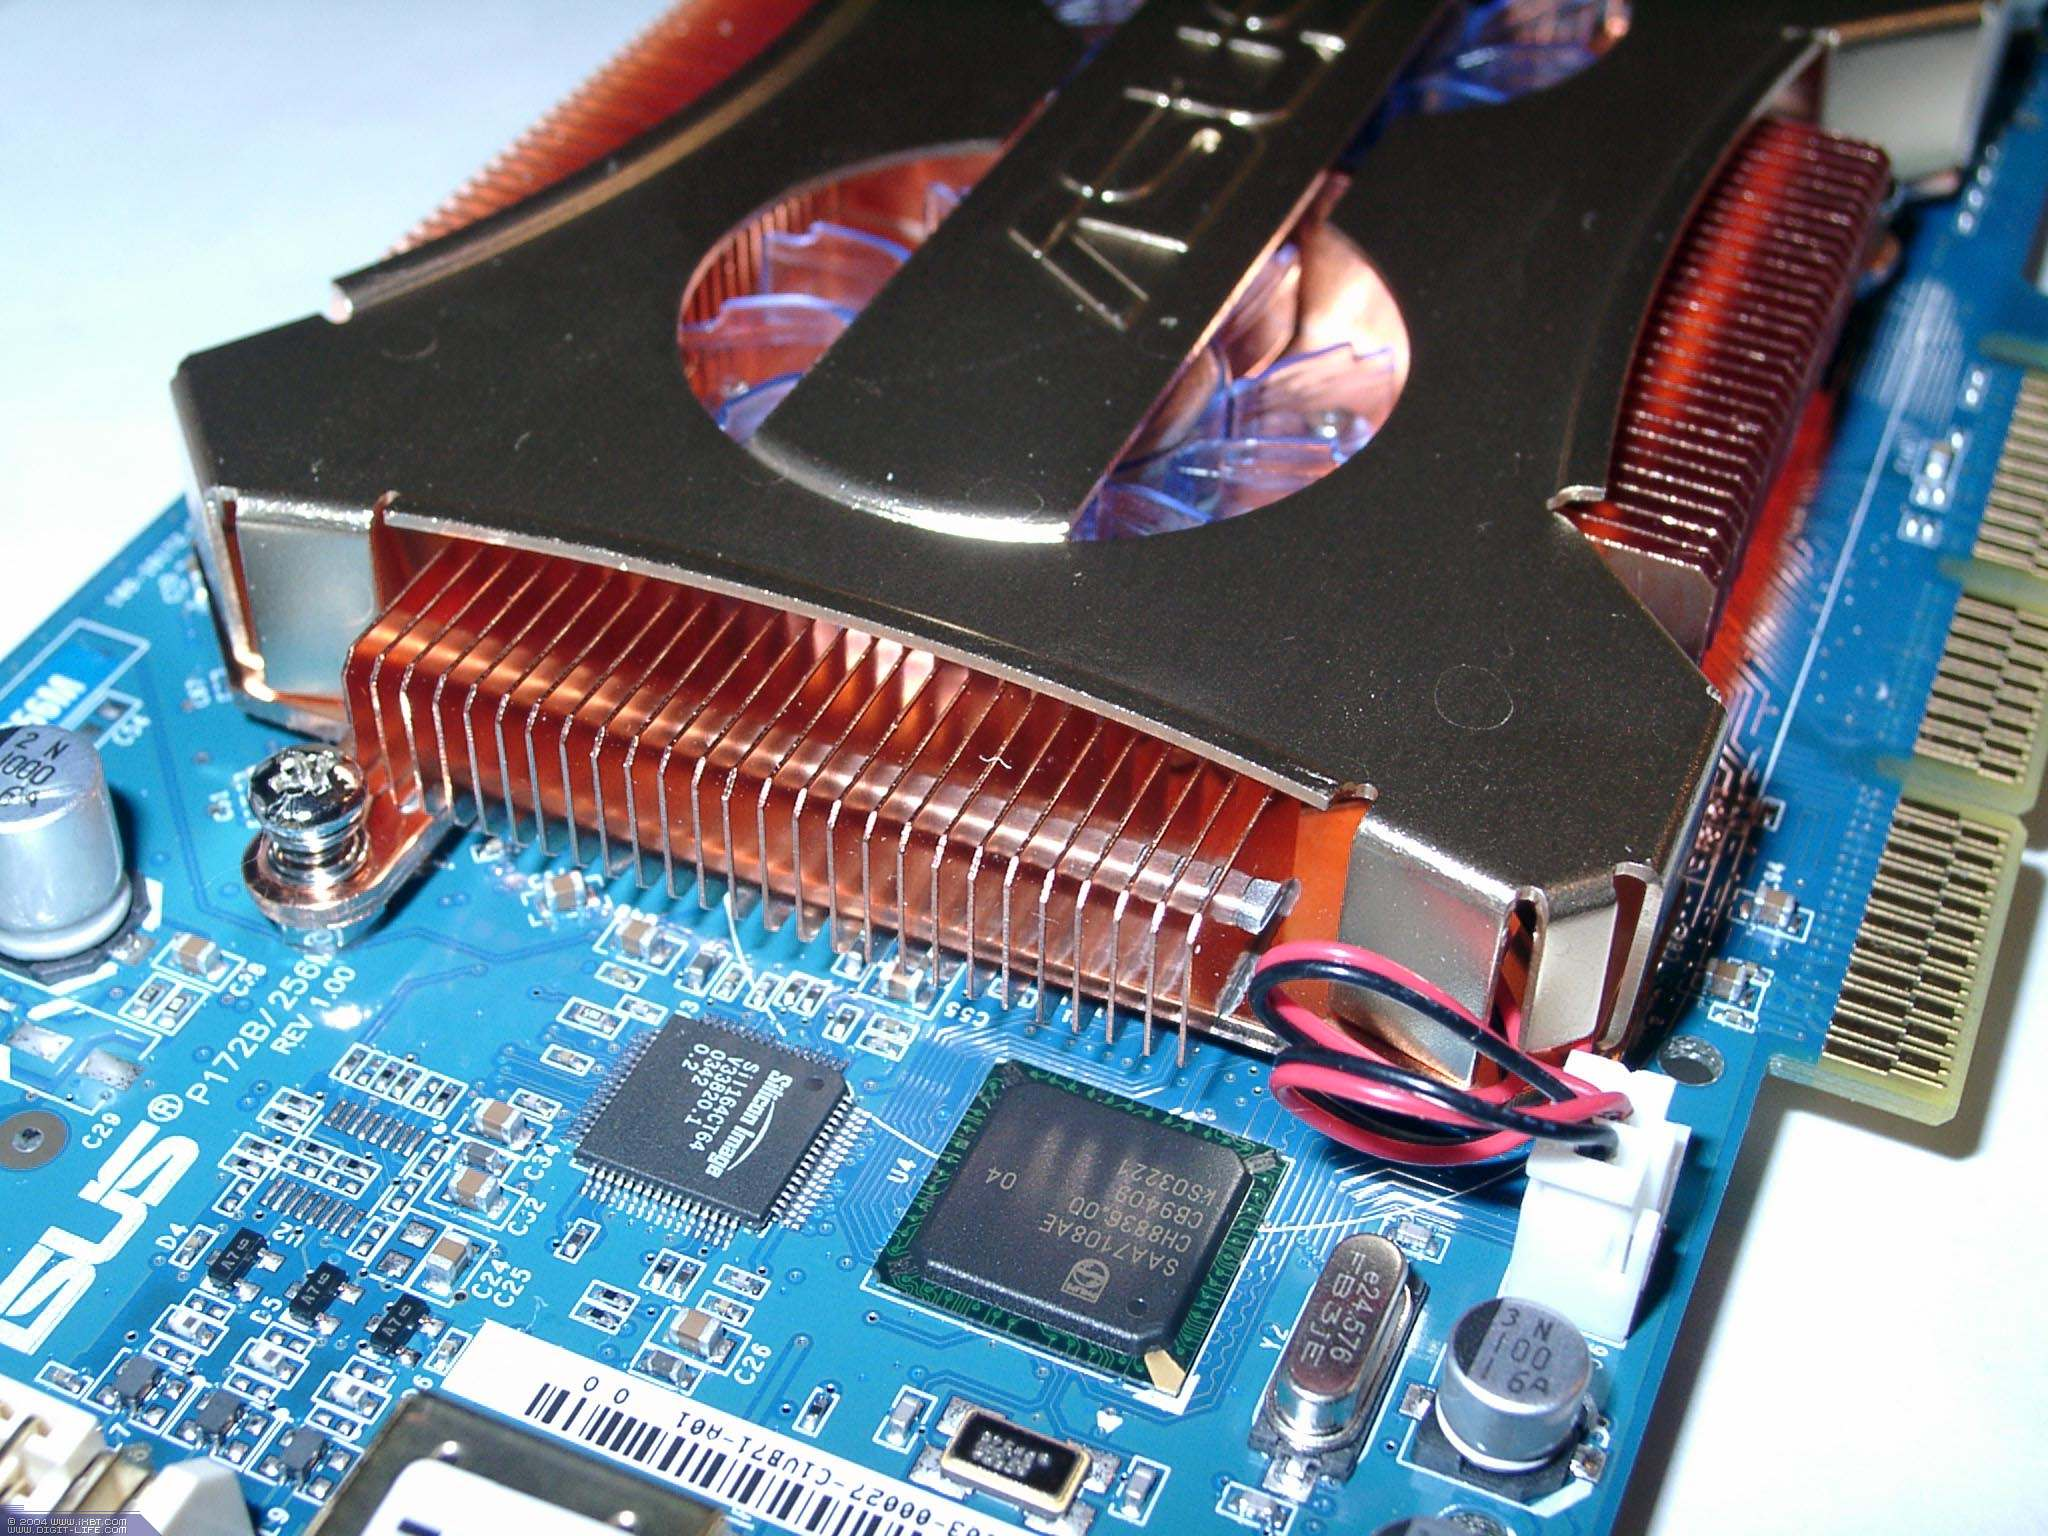 ASUS V9980 ULTRA DRIVERS FOR WINDOWS 10